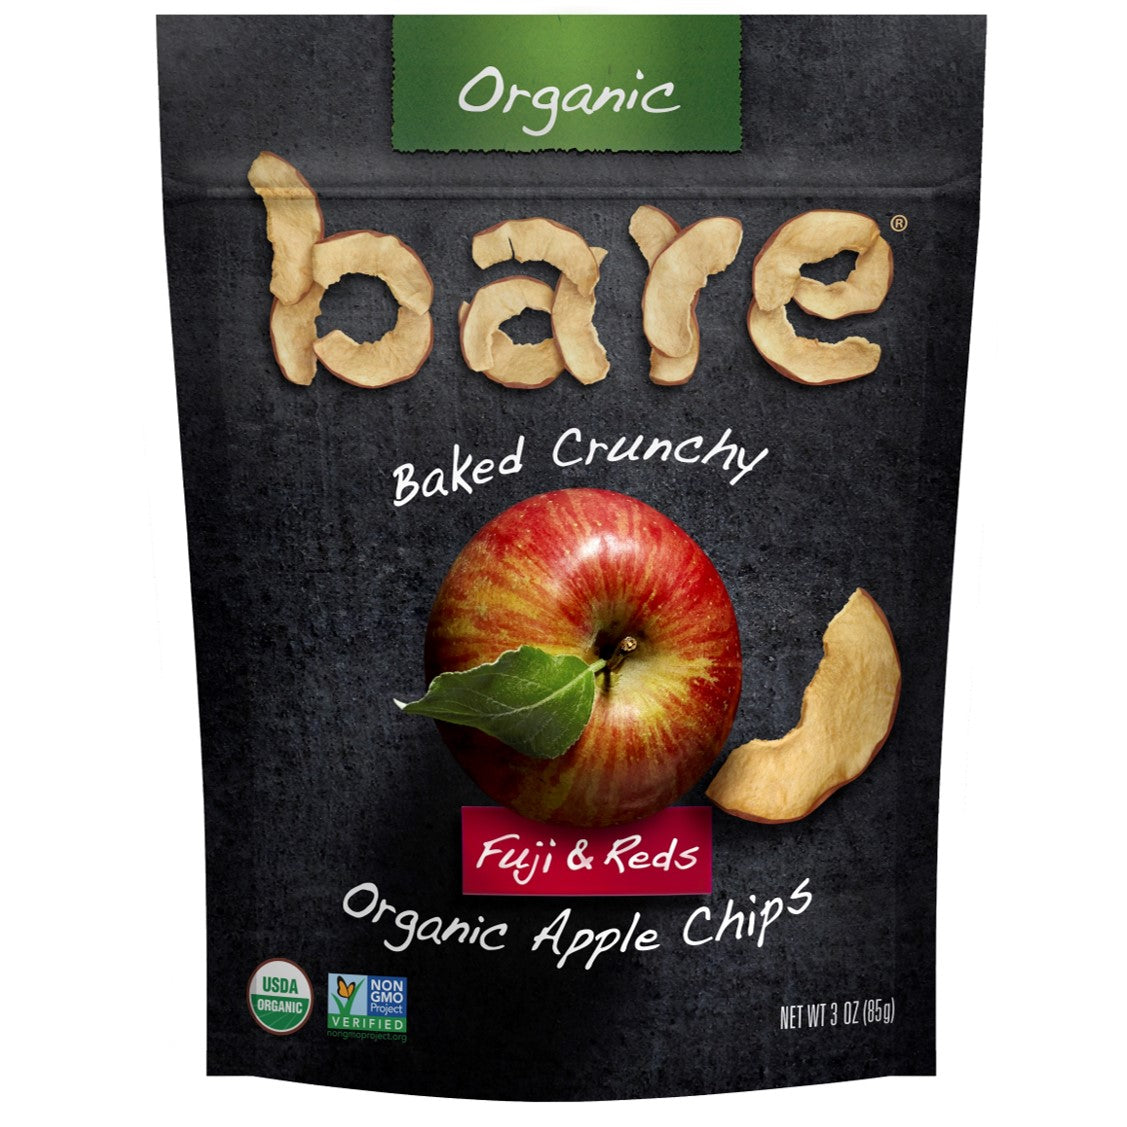 Bare Fruit Organic Fuji & Reds Apple Chips, 85g.